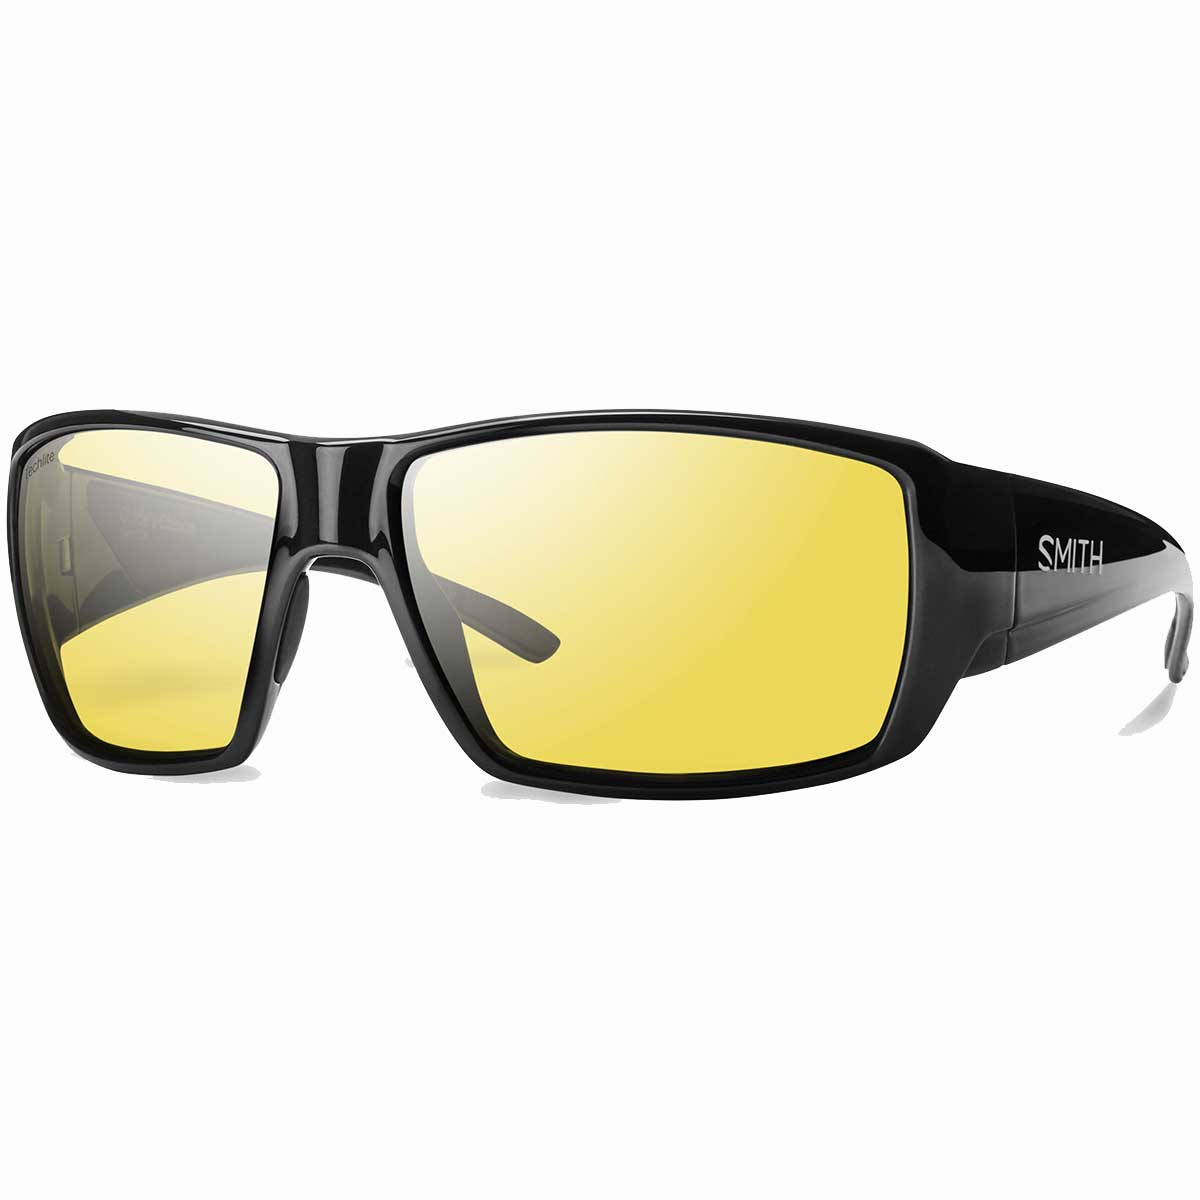 Smith Guides Choice Sunglasses Polarized in Black with Ignitor main view